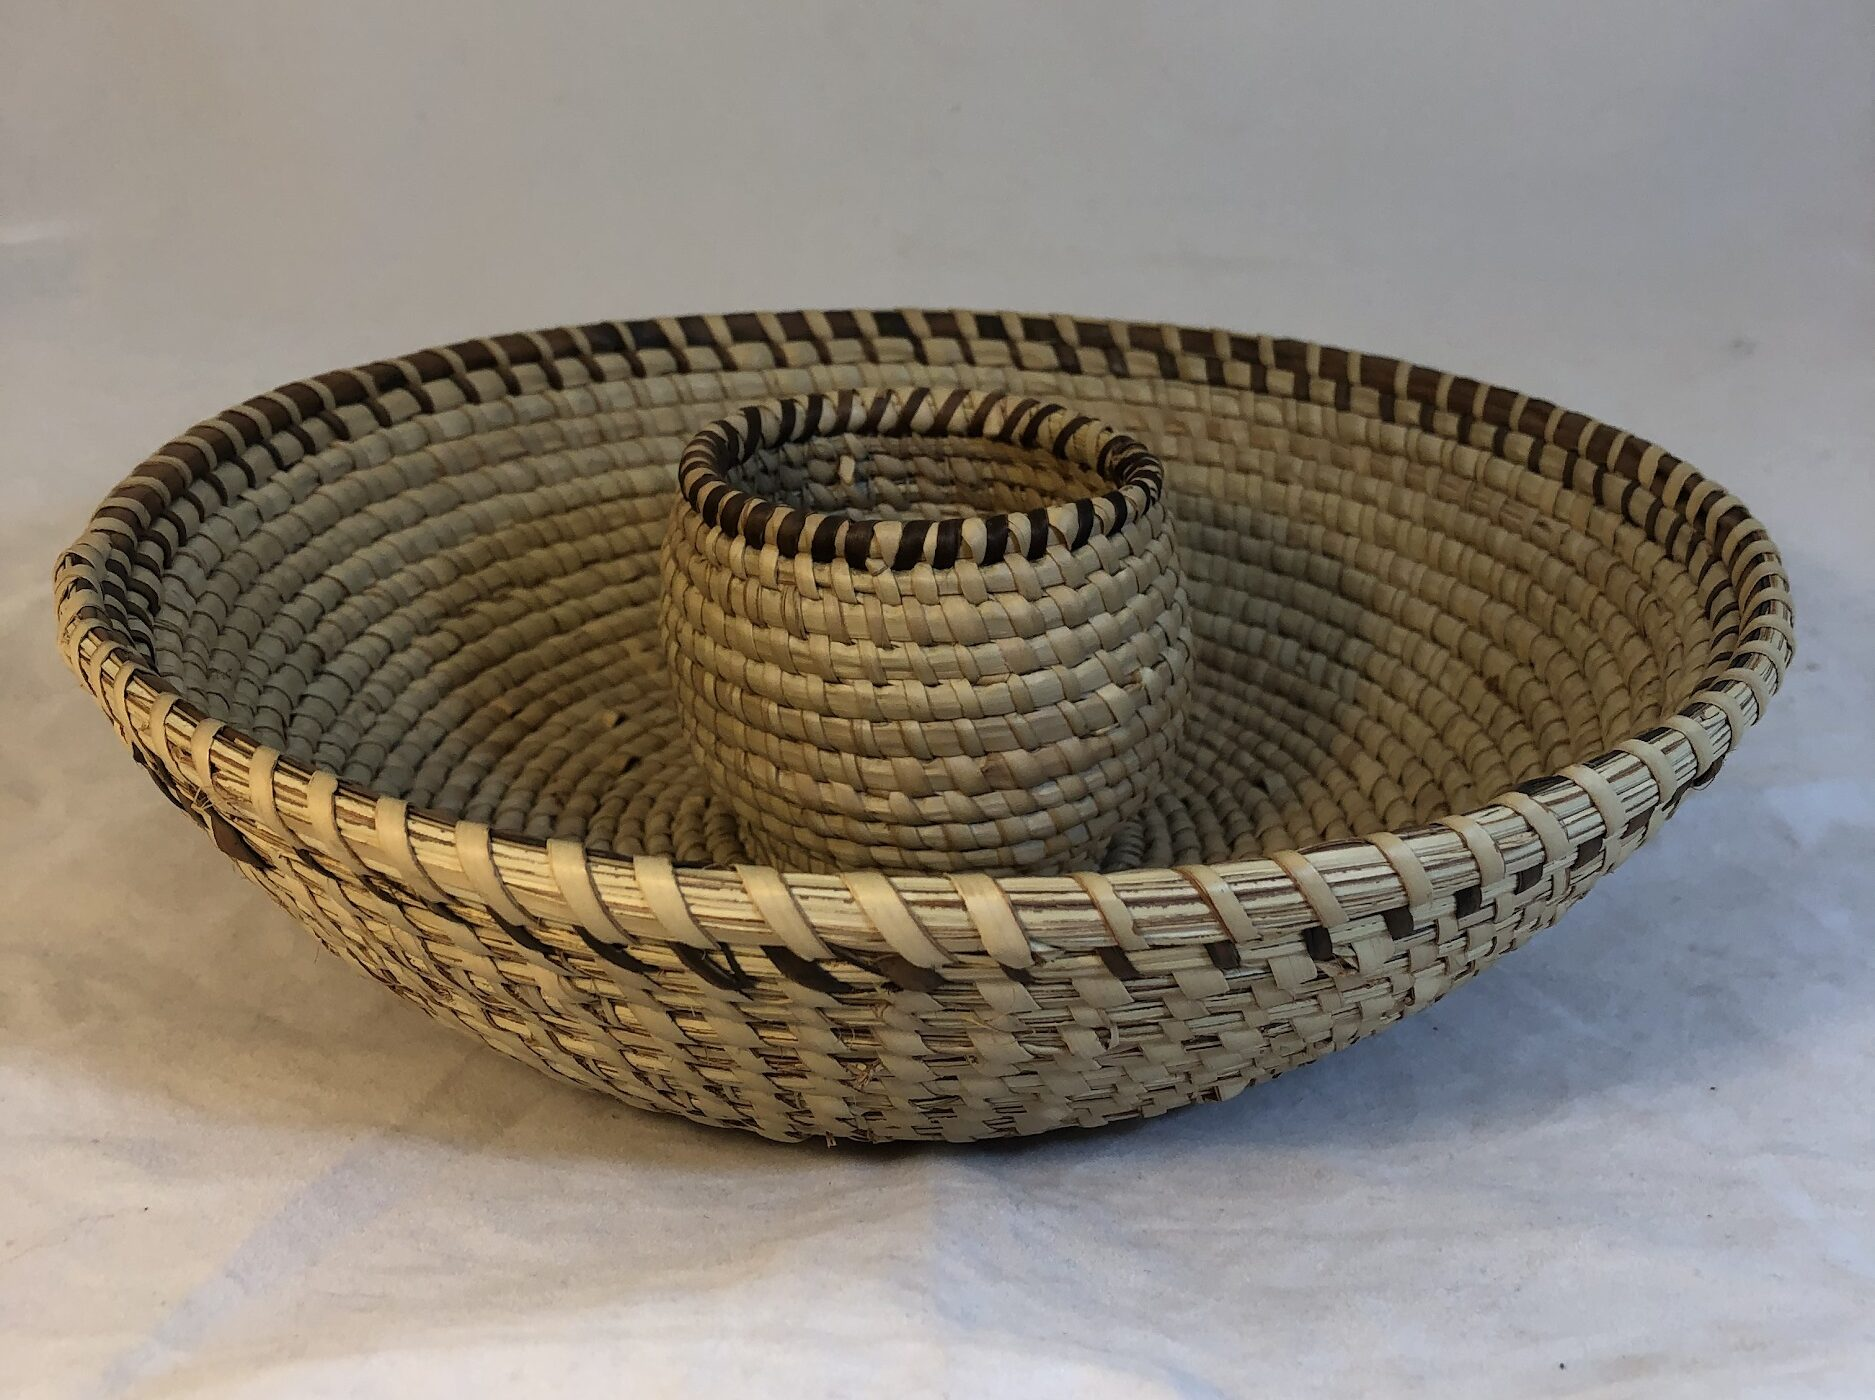 Image of Basket with Center Bowl